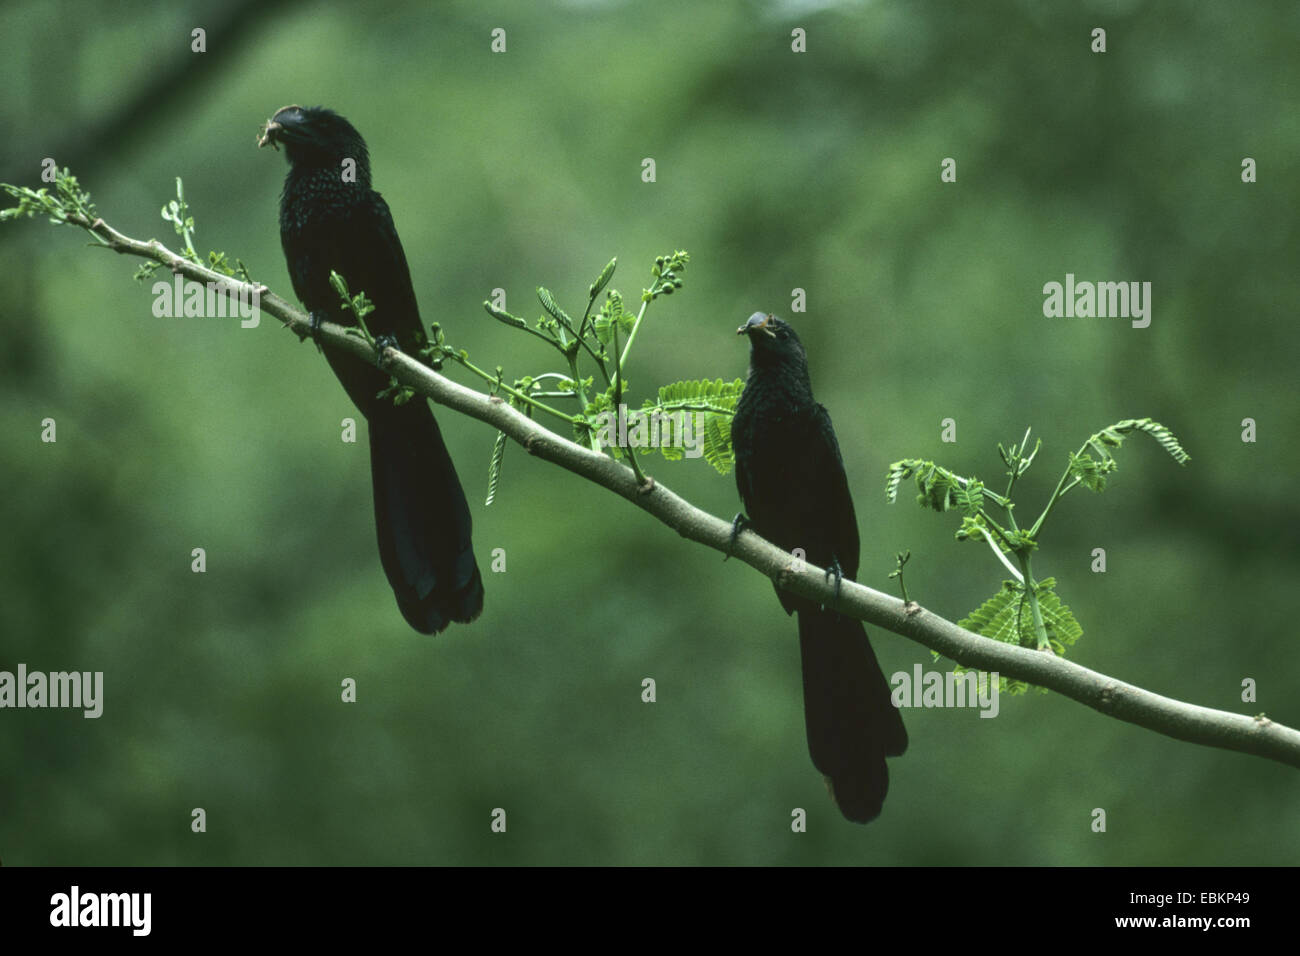 smooth-billed ani (Crotophaga ani), two smooth-billed anis on a branch - Stock Image